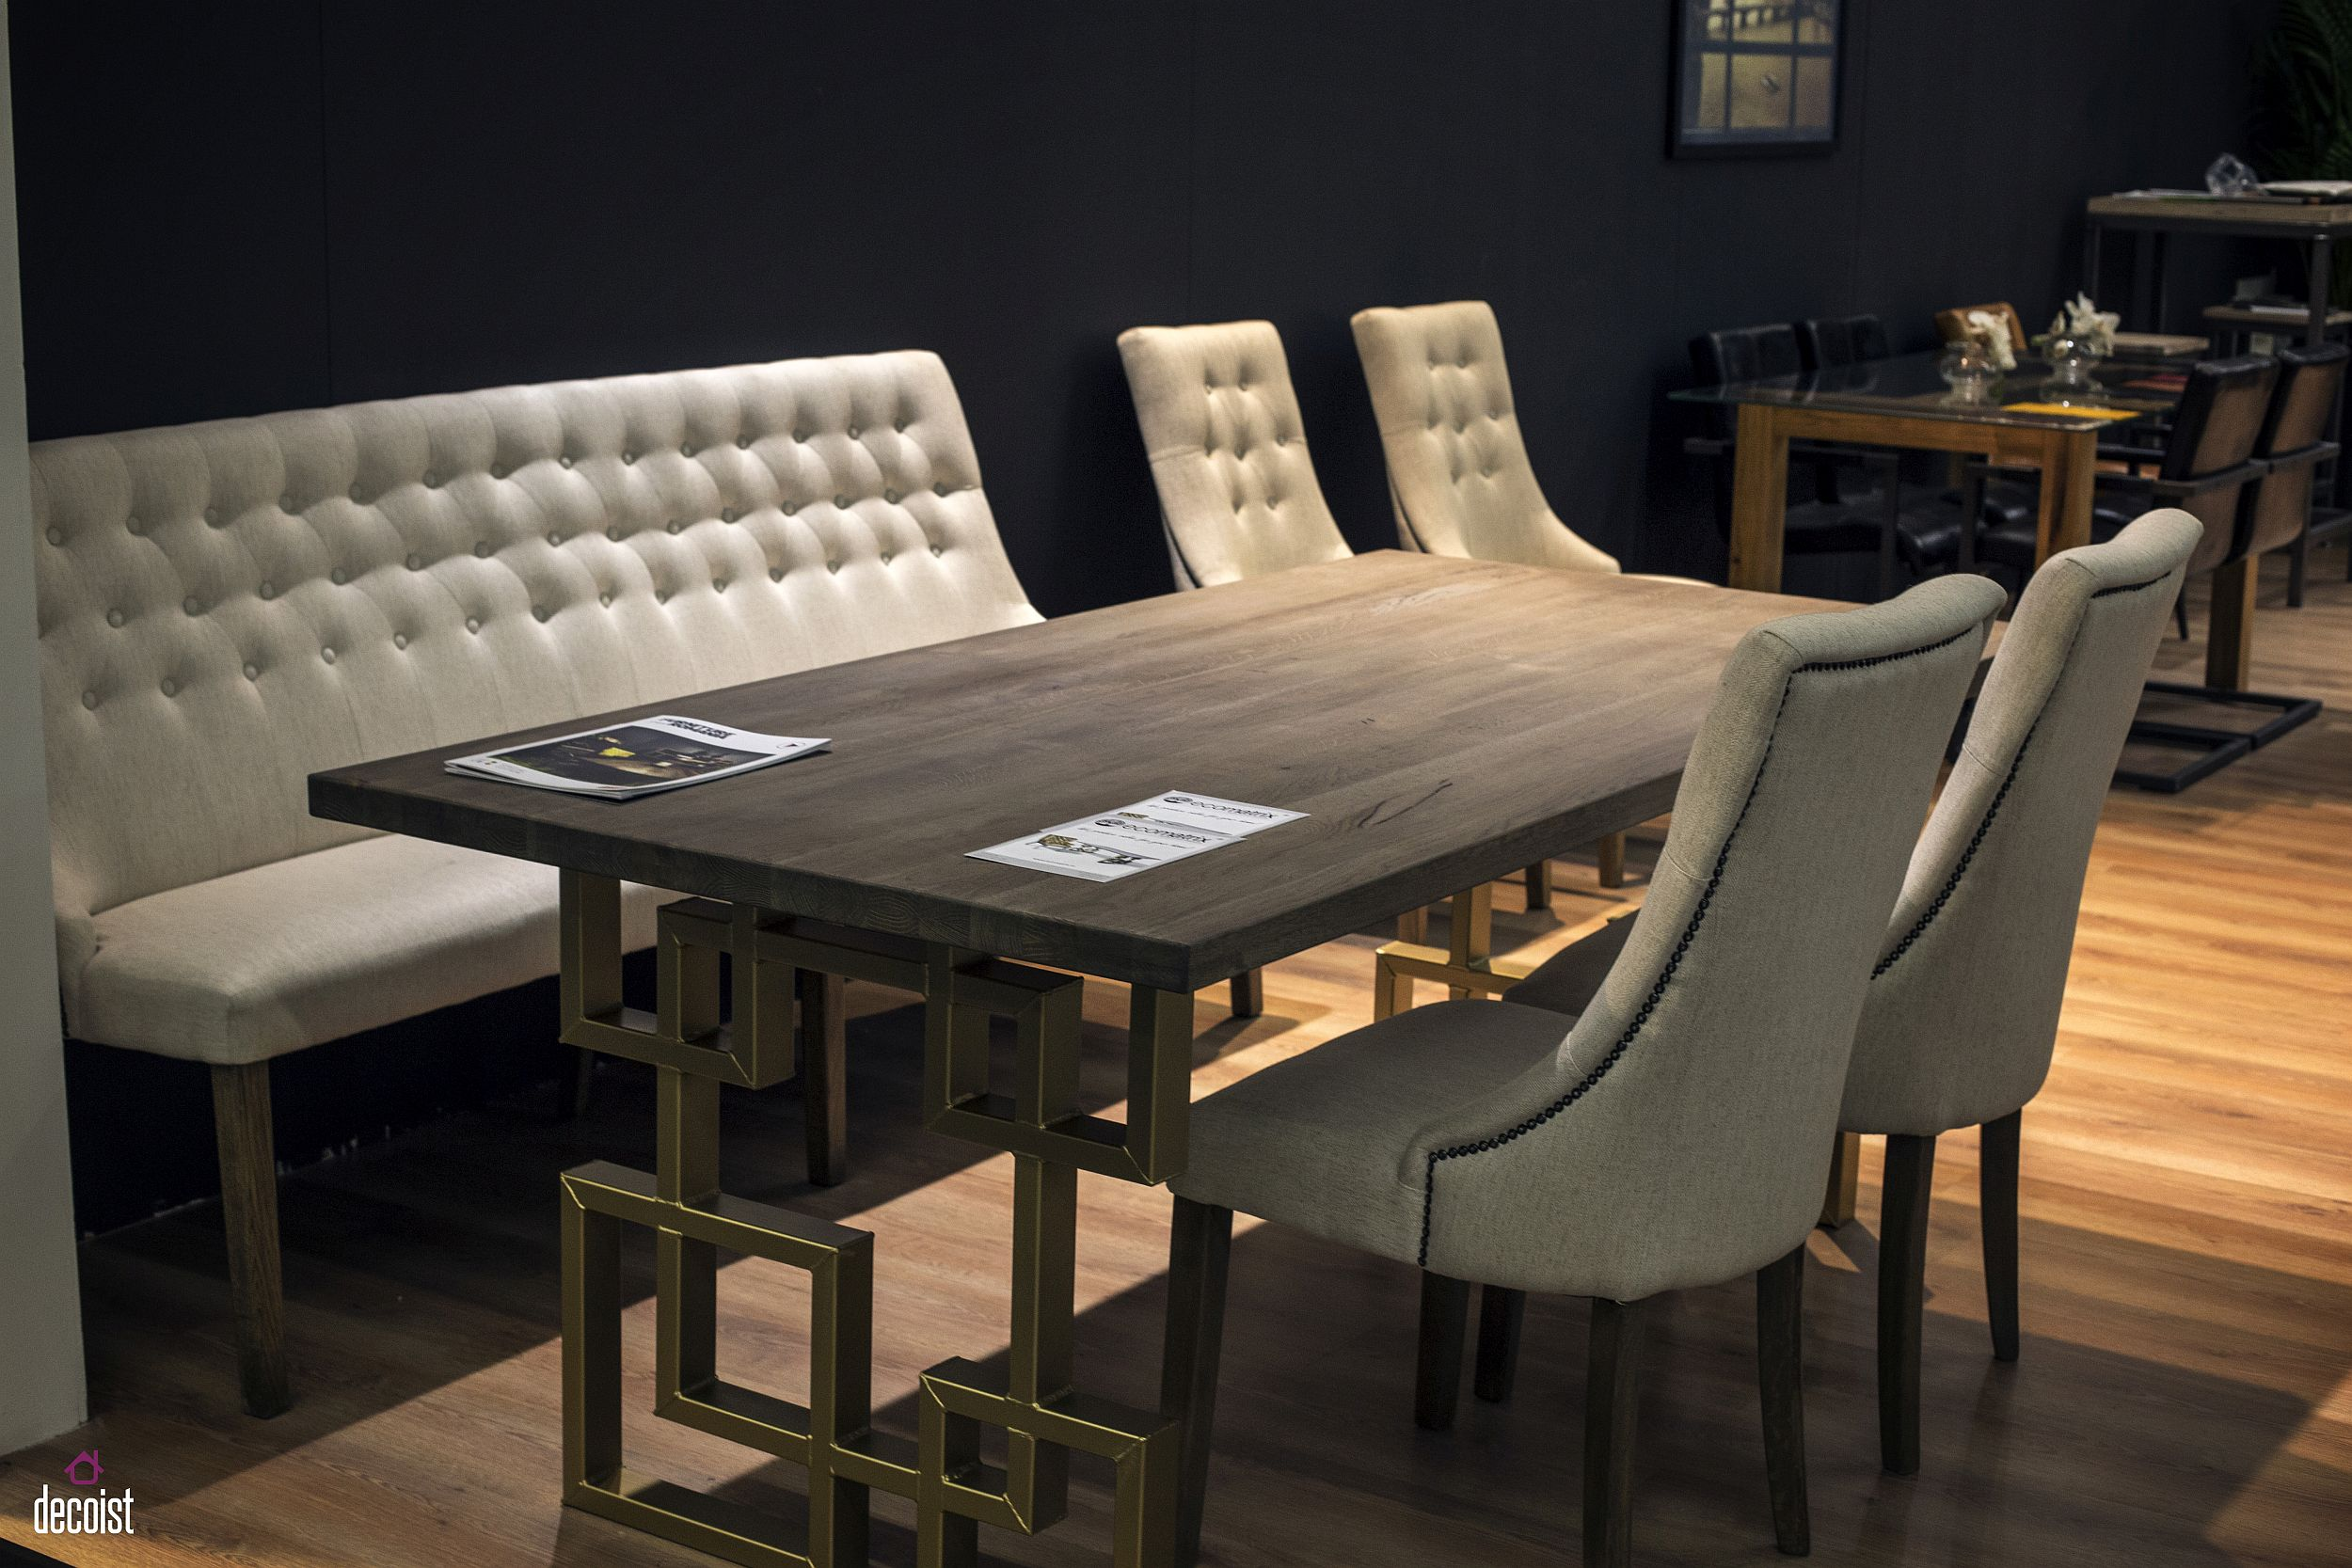 Tufted bench along with comfy chairs for the rustic modern dining room